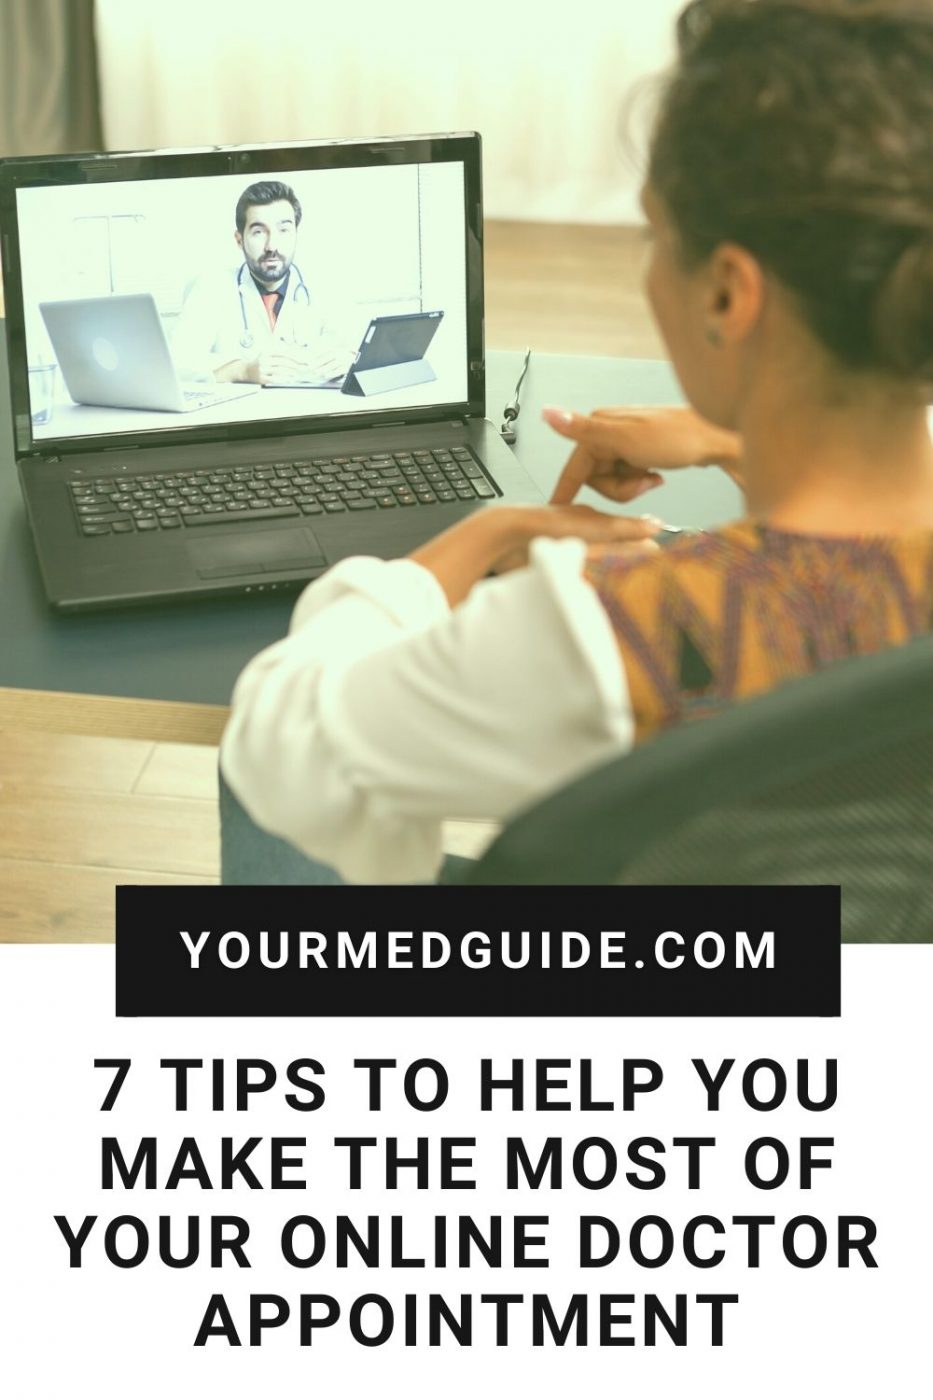 7 tips to help you make the most of your online doctor appointment